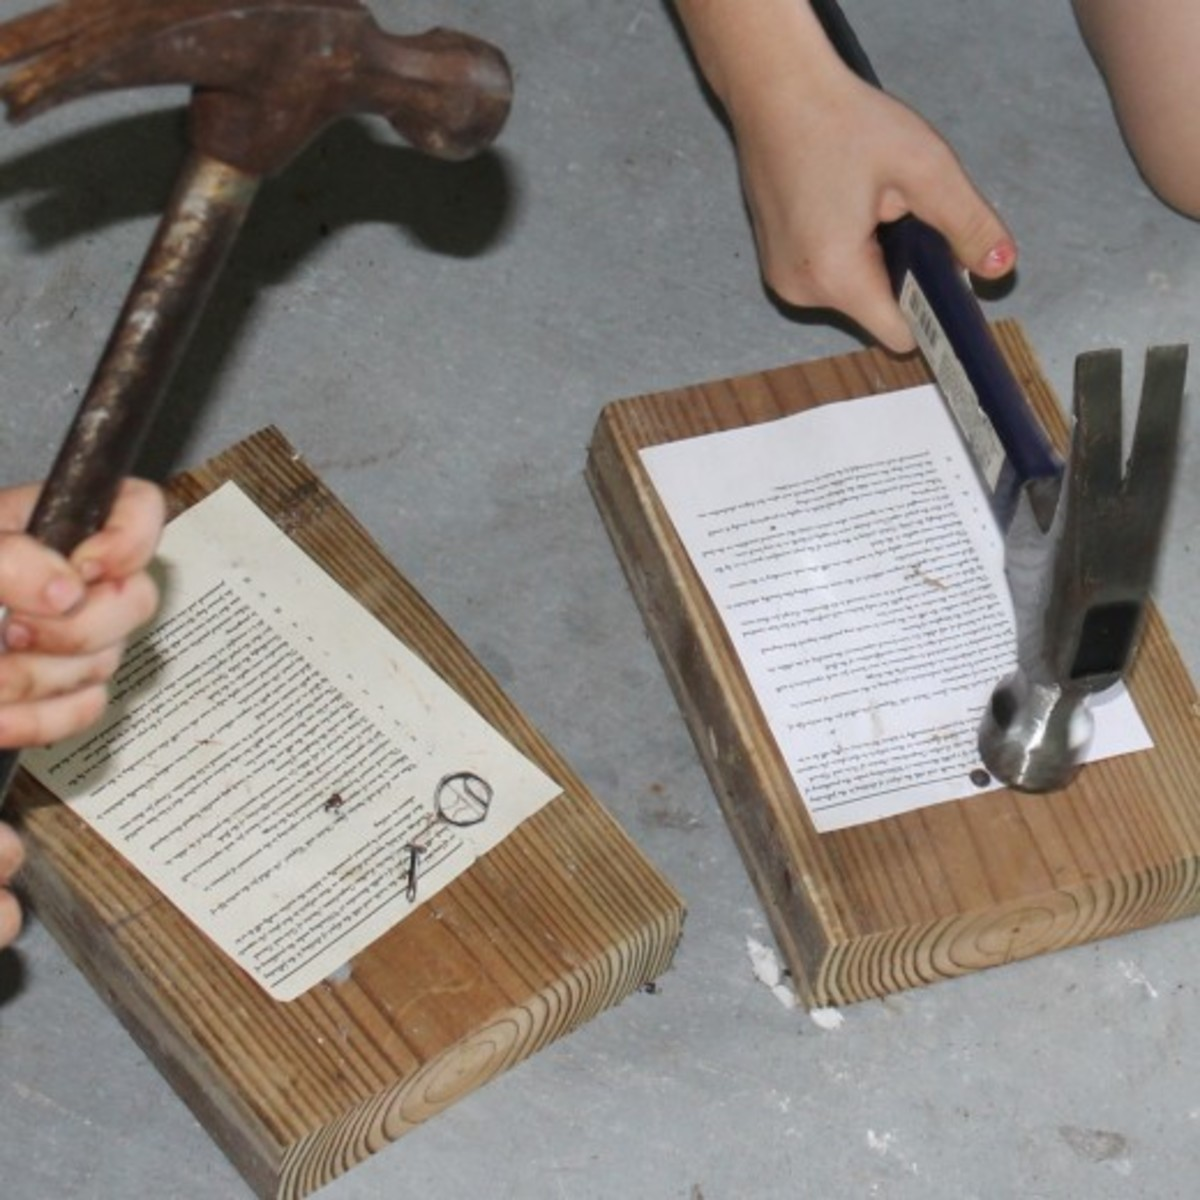 Nailing copies of the 95 Theses to the Wittenberg Door